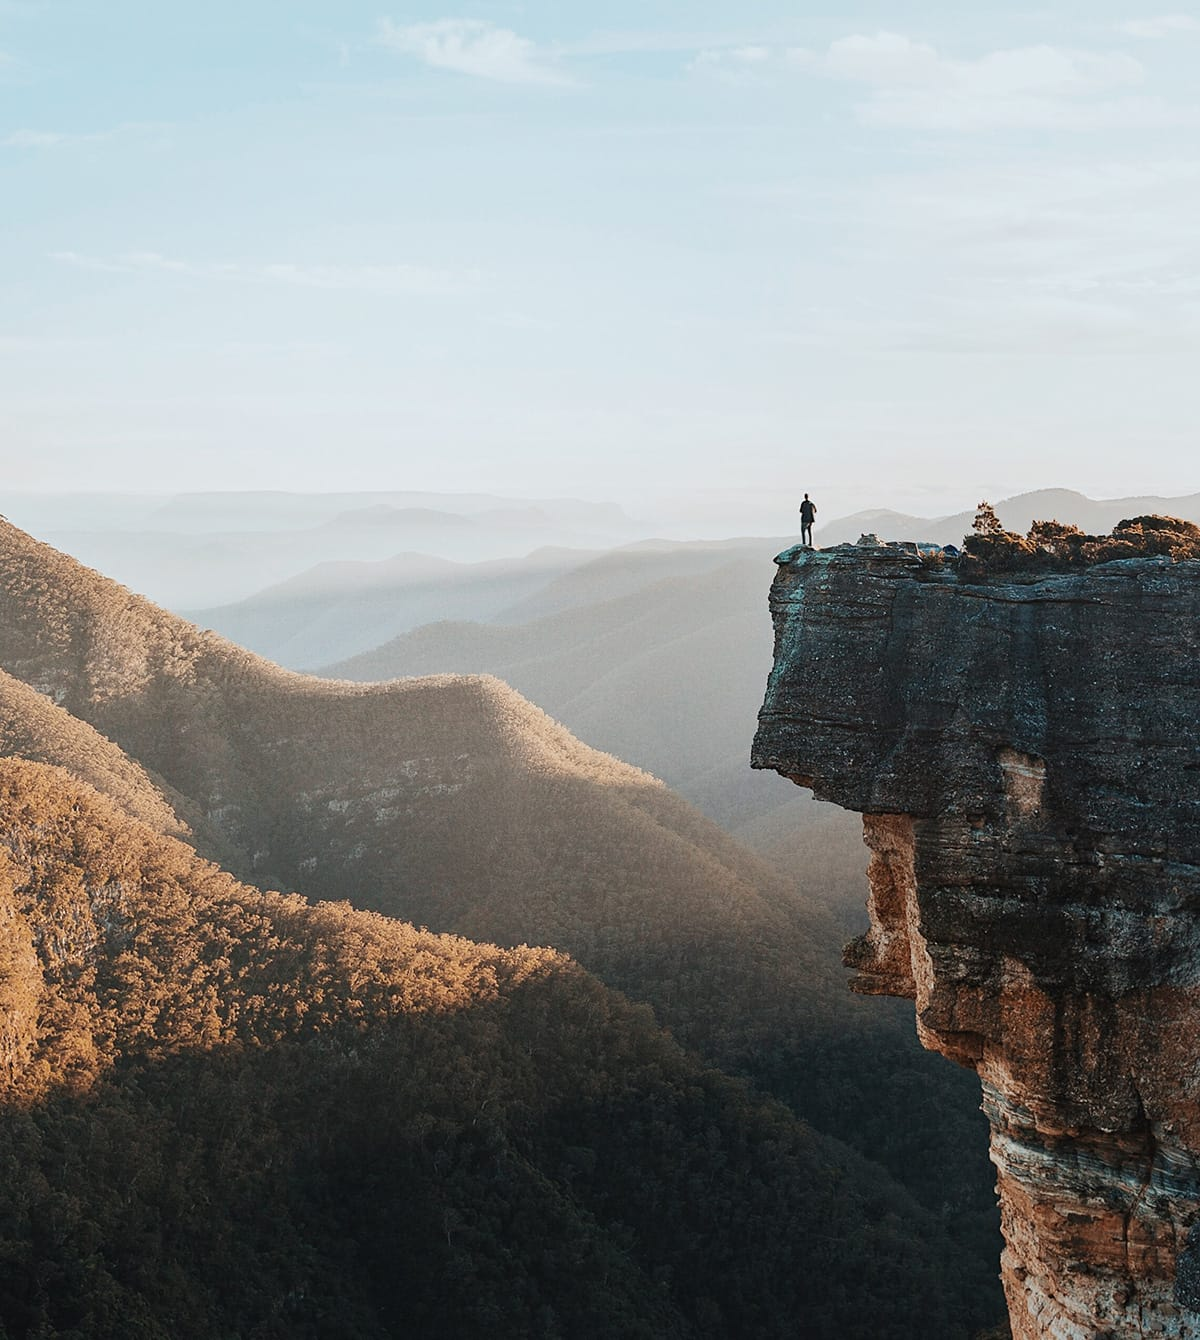 A person standing on the edge of a very large cliff.